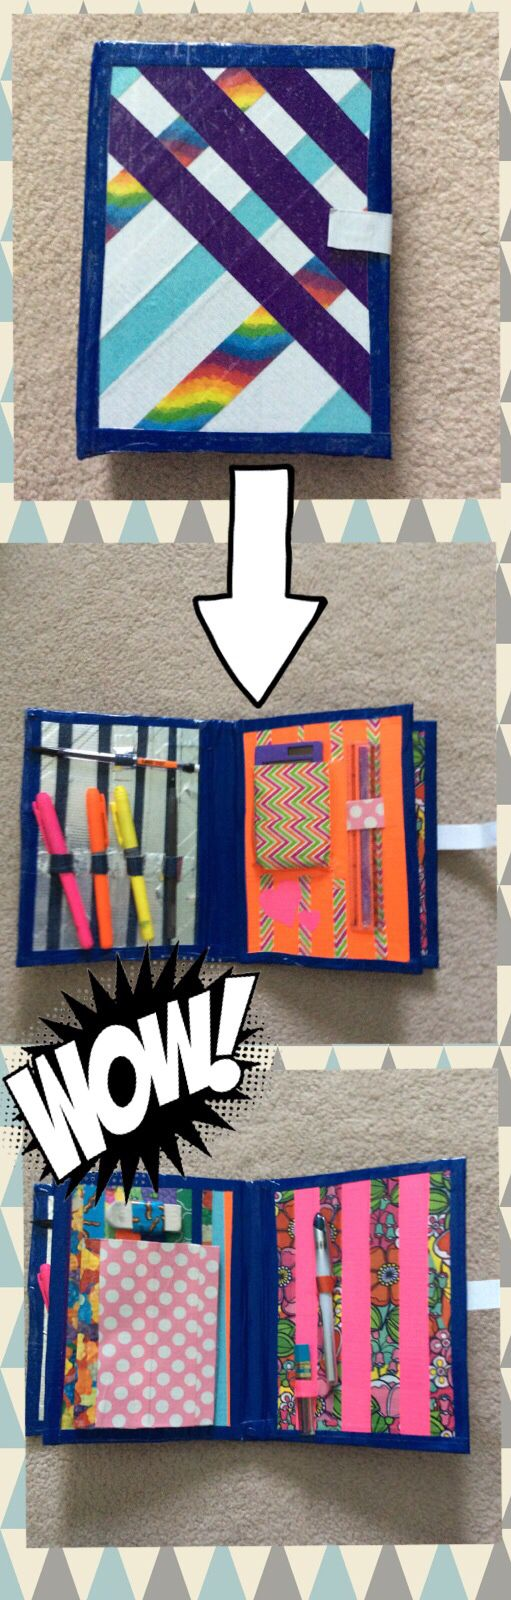 Duct tape binder/pencil book made By Jordyn Reisch